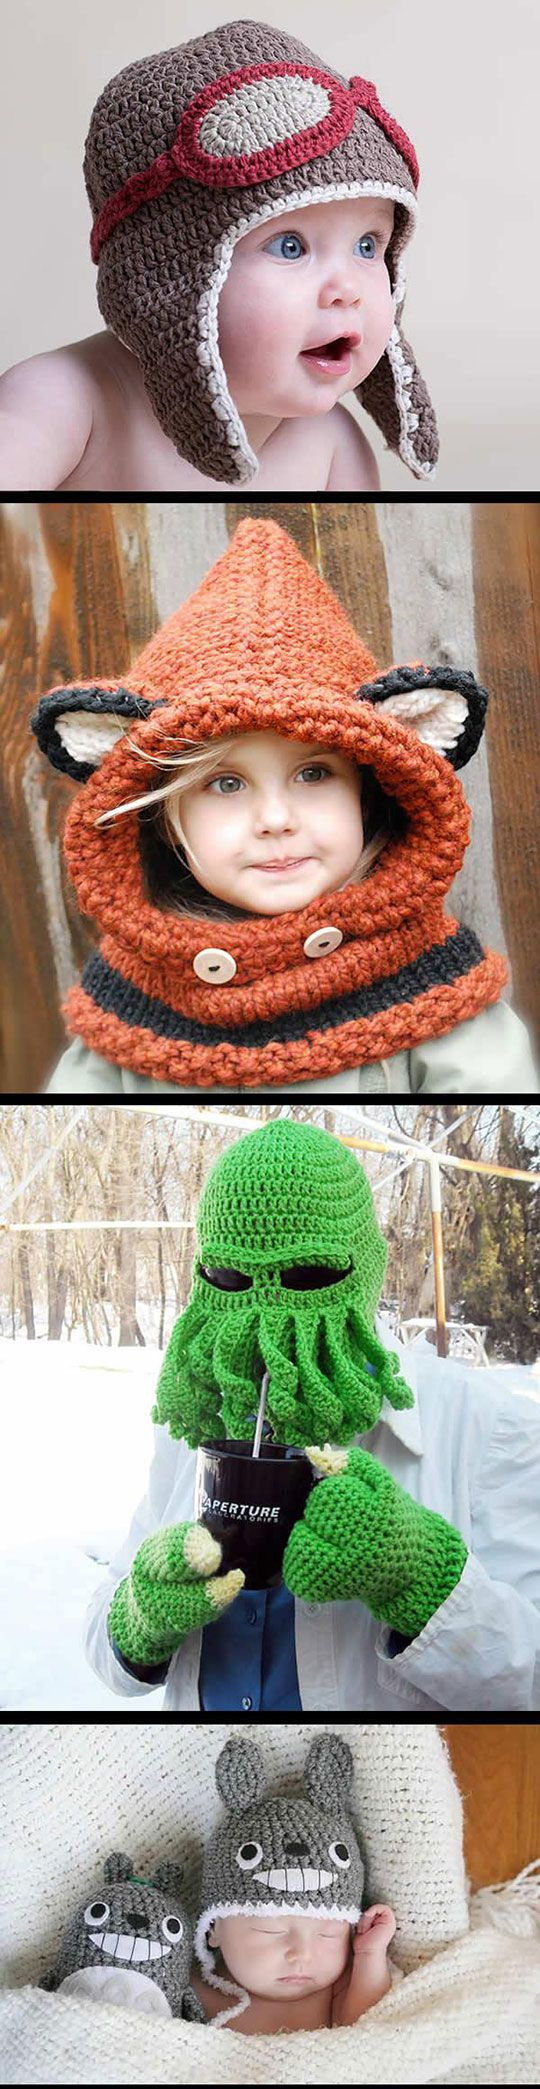 25 Cool Winter Hats That Will Keep You Warm. Makes me wish I knew how to knit or crochet!